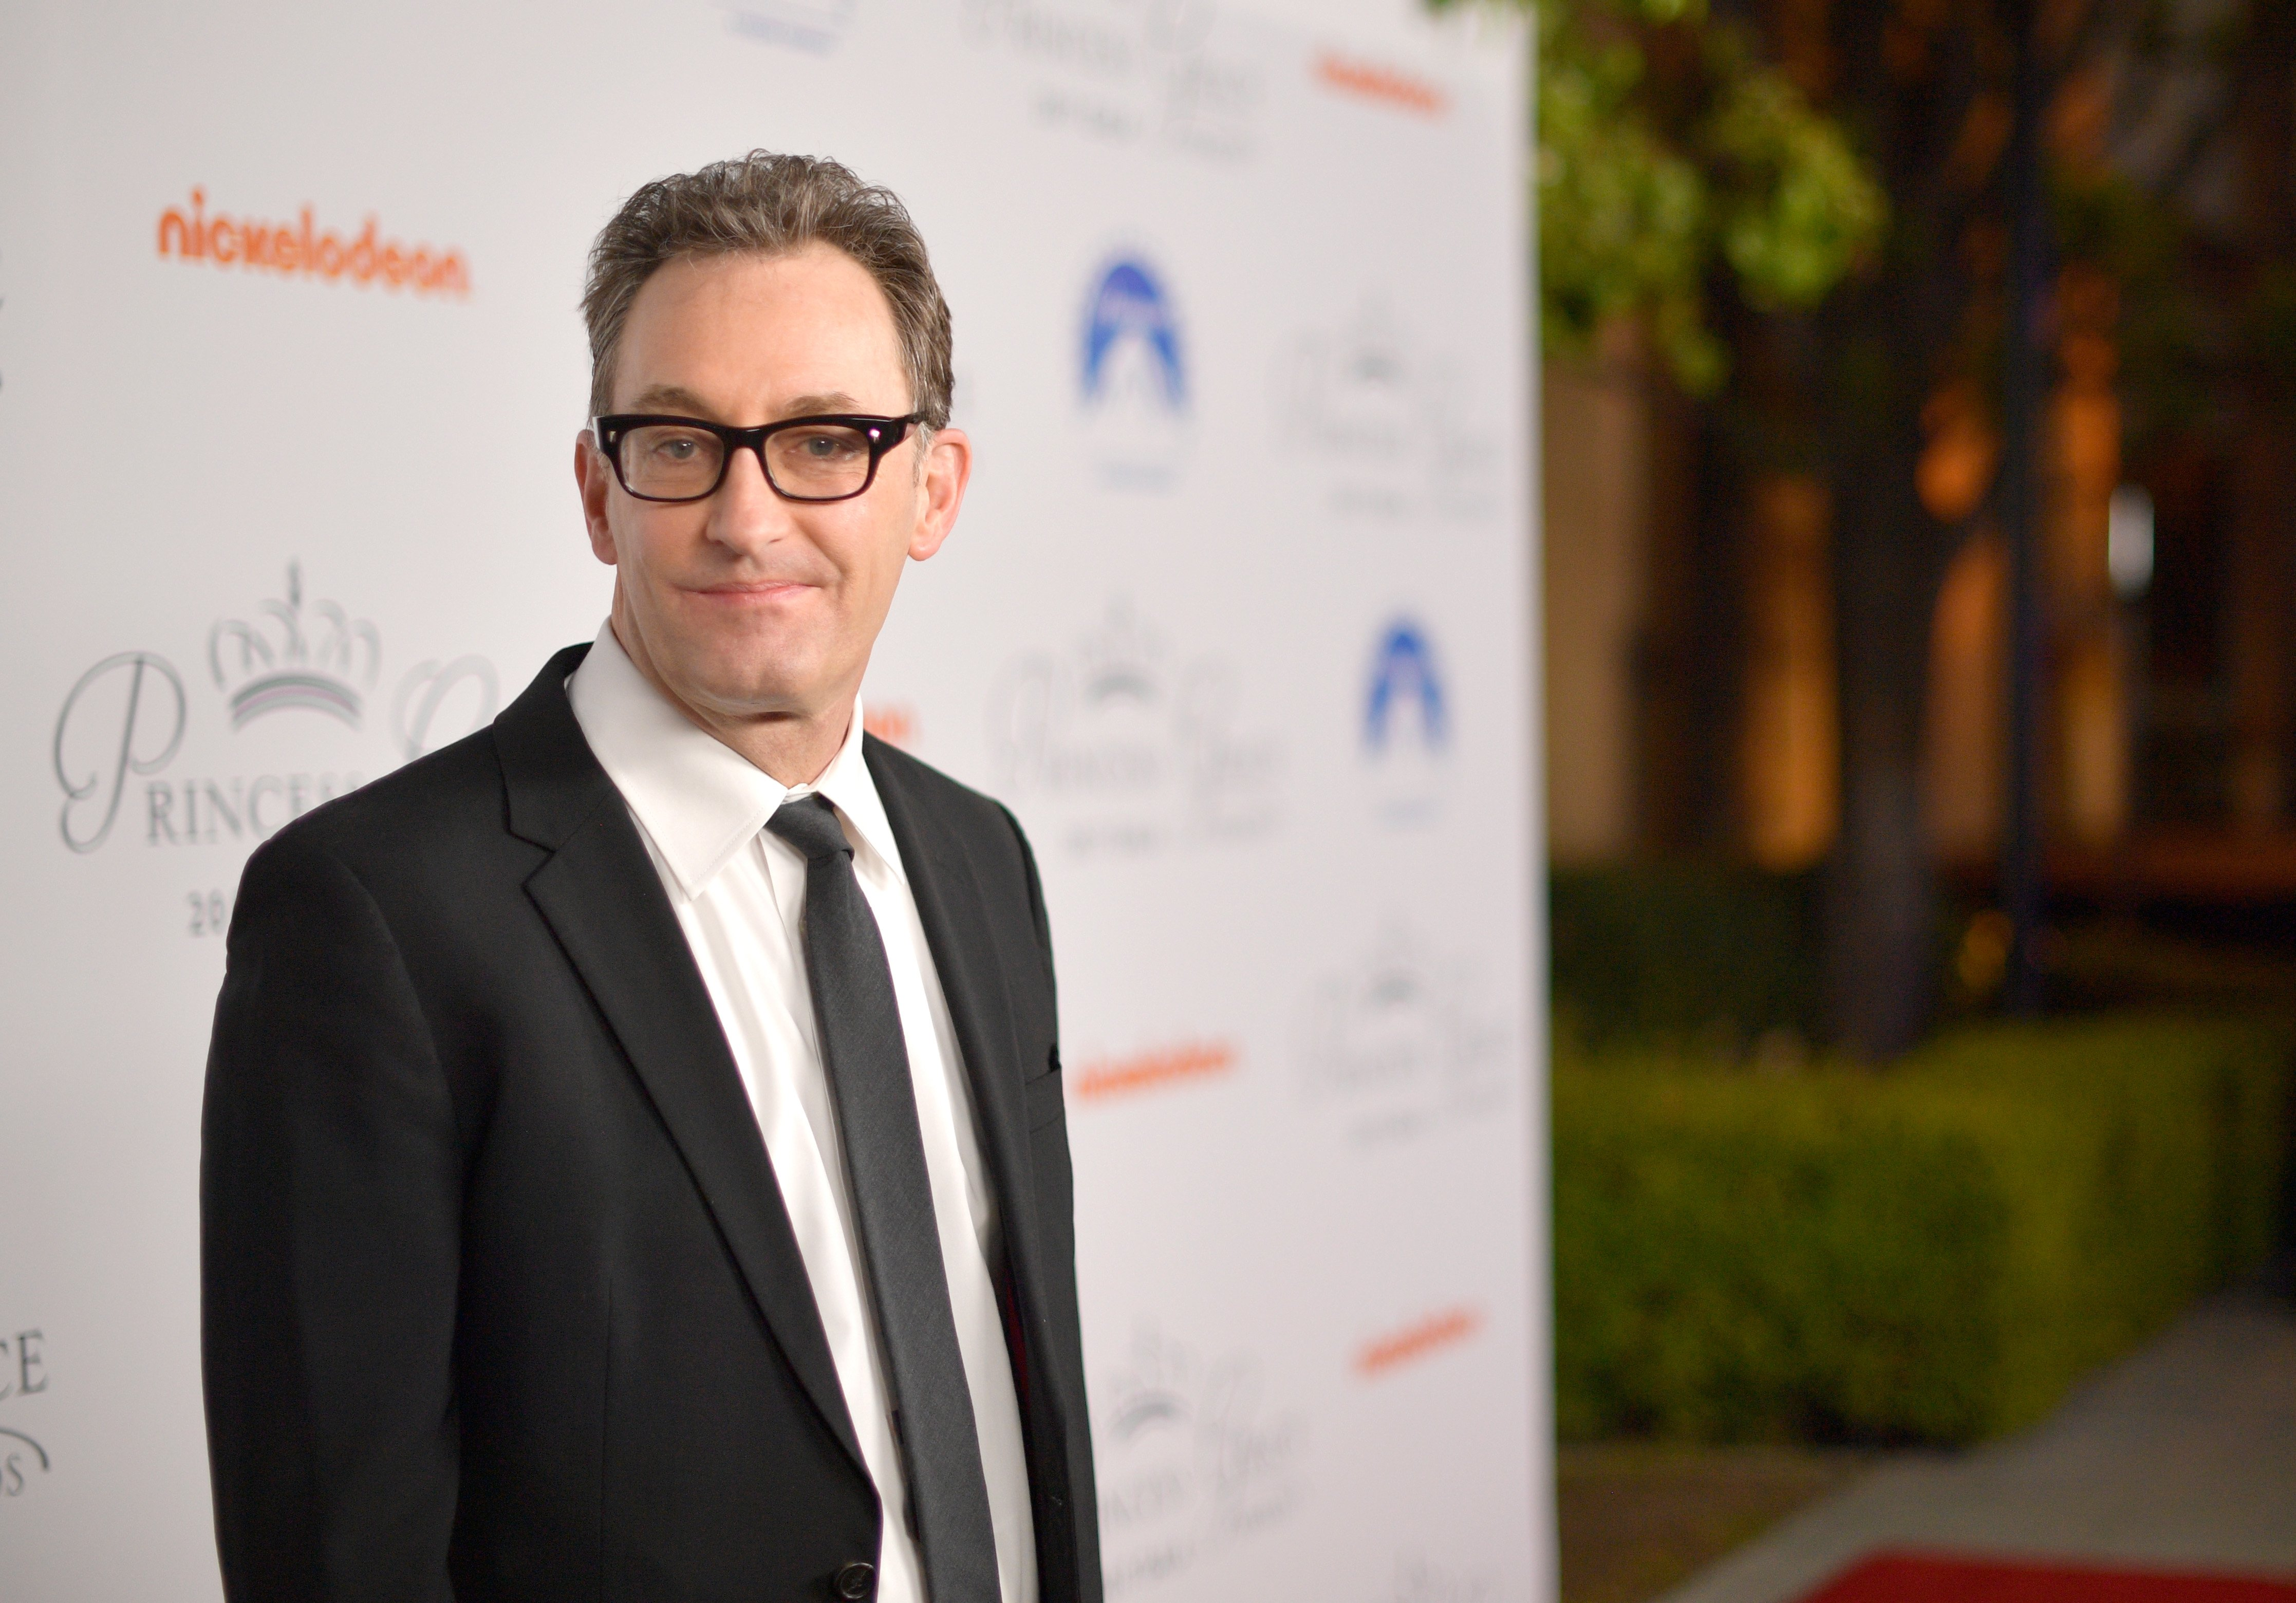 Tom Kenny attends the 2017 Princess Grace Awards Gala Kick Off Event with a special tribute to Stephen Hillenberg at Paramount Studios on October 24, 2017 in Hollywood, California | Photo: GettyImages